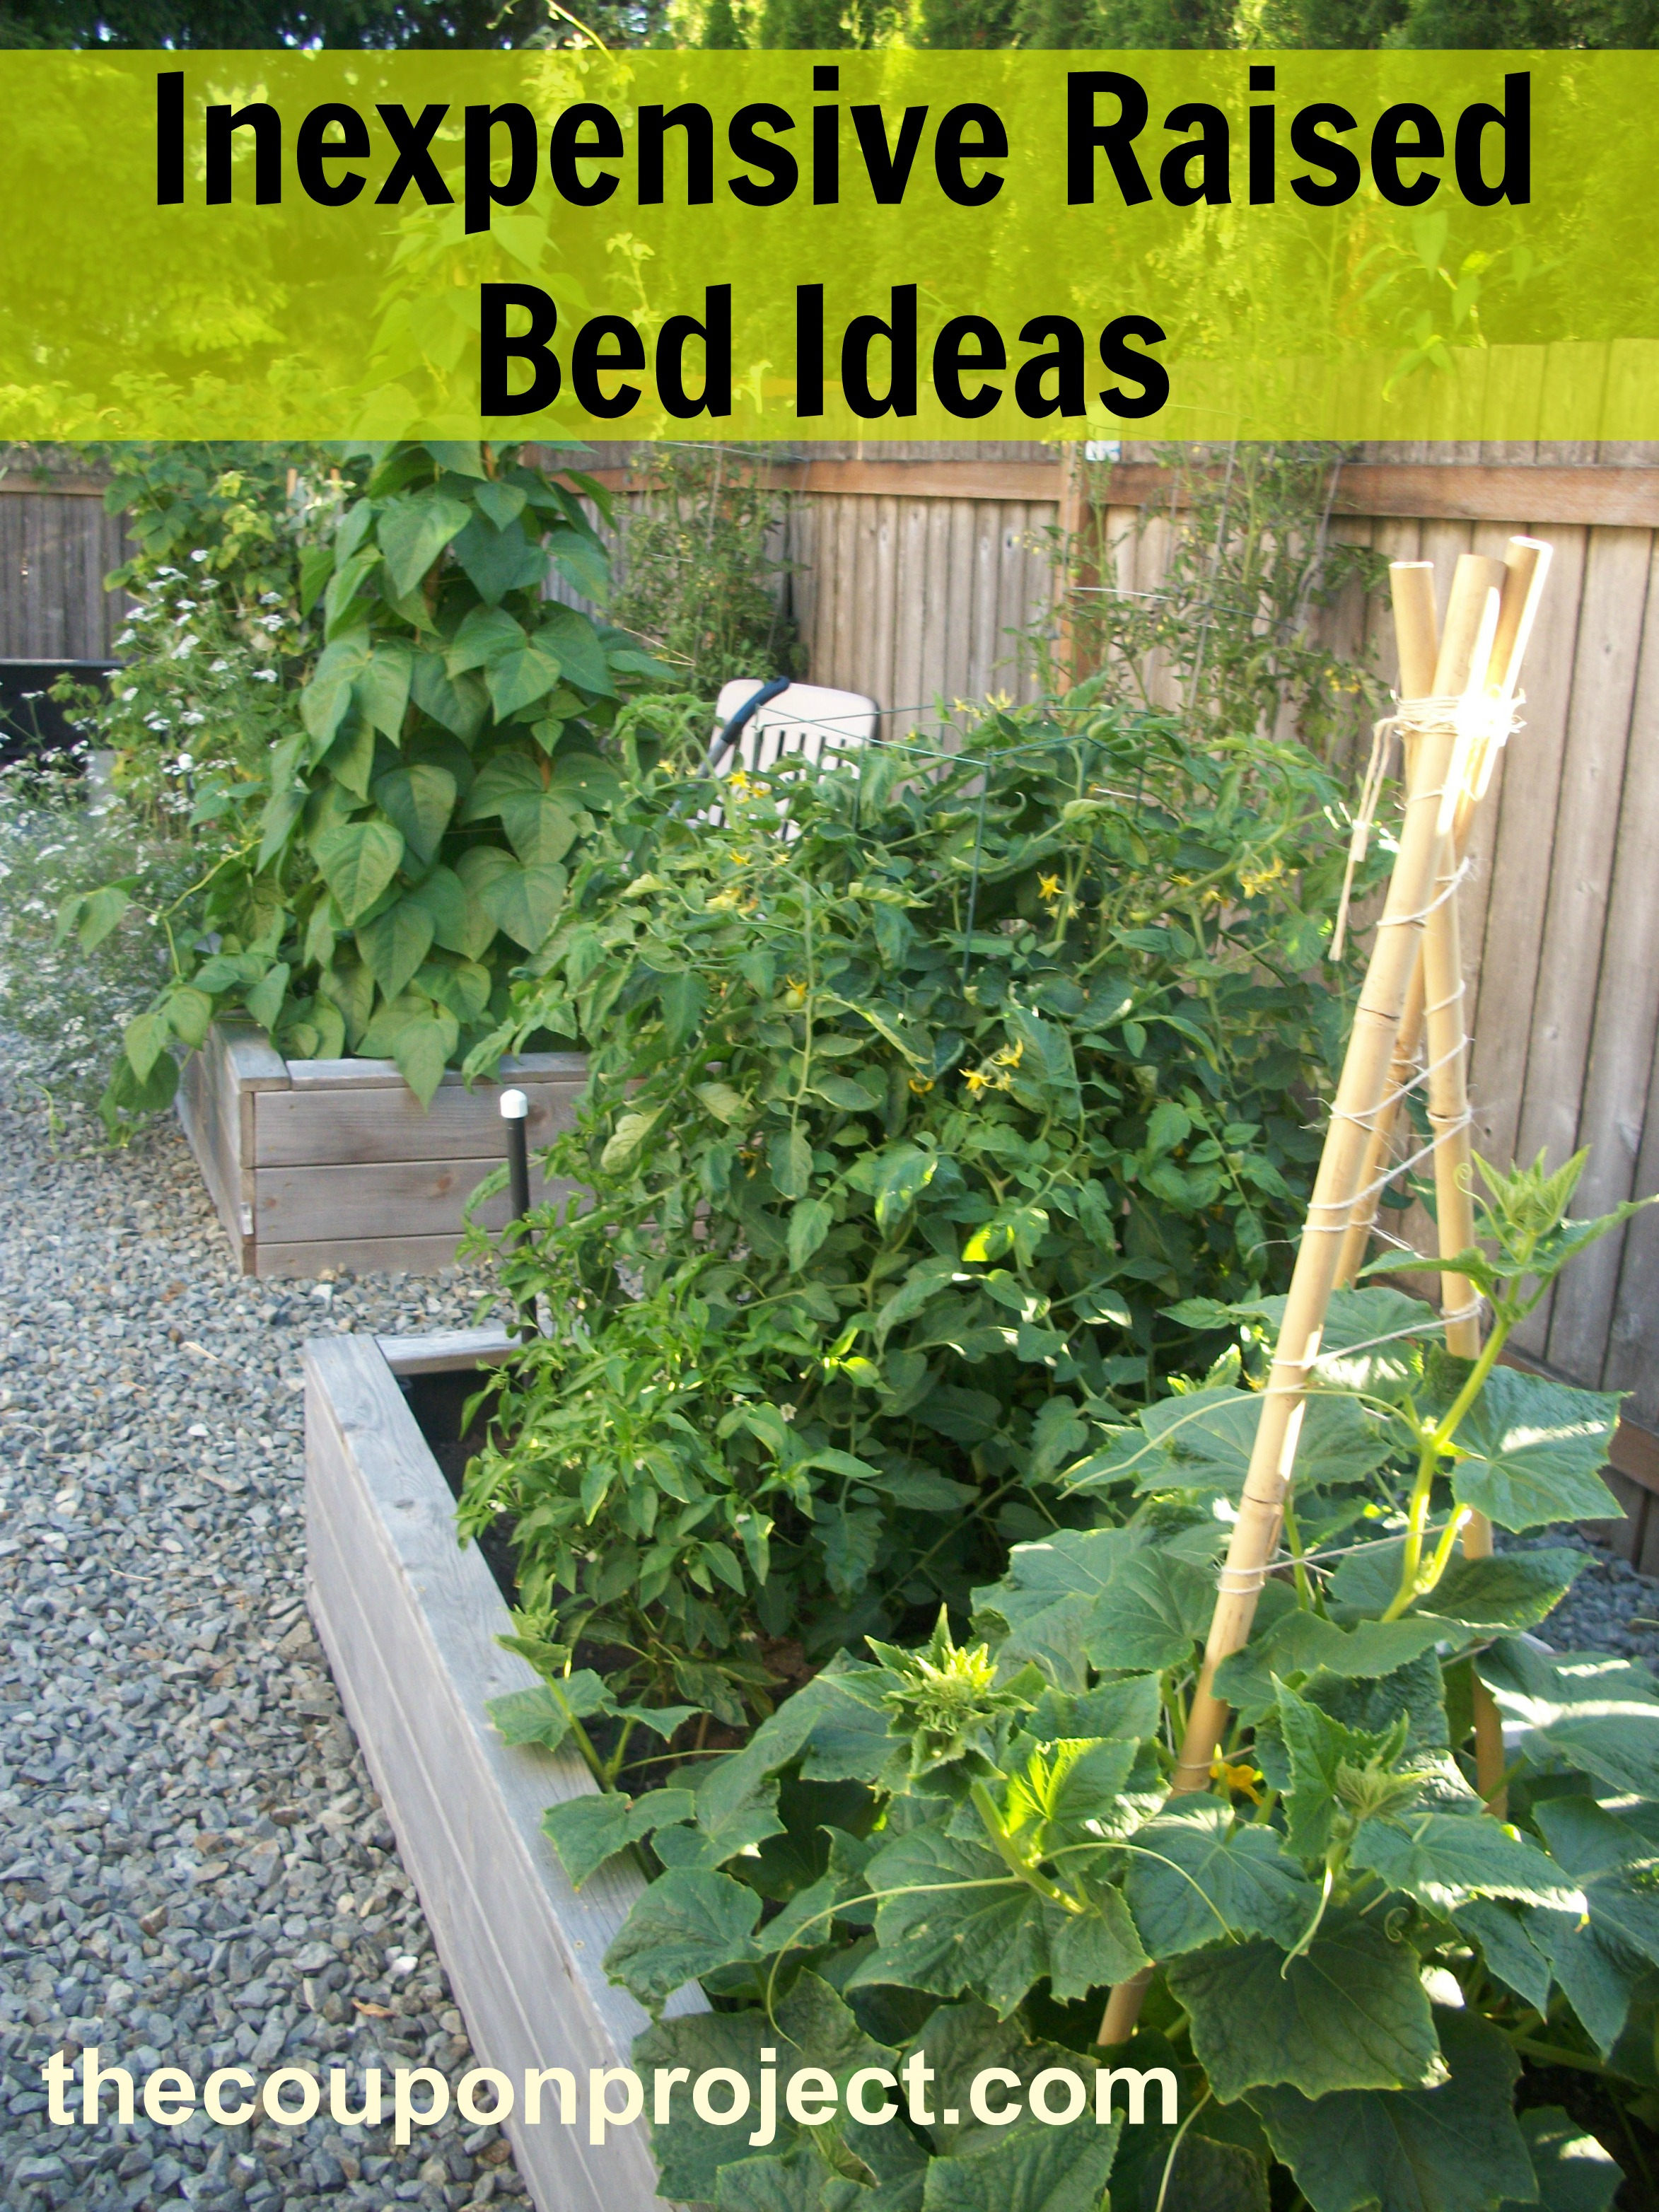 Inexpensive Garden Ideas frugal gardening: four inexpensive raised bed ideas